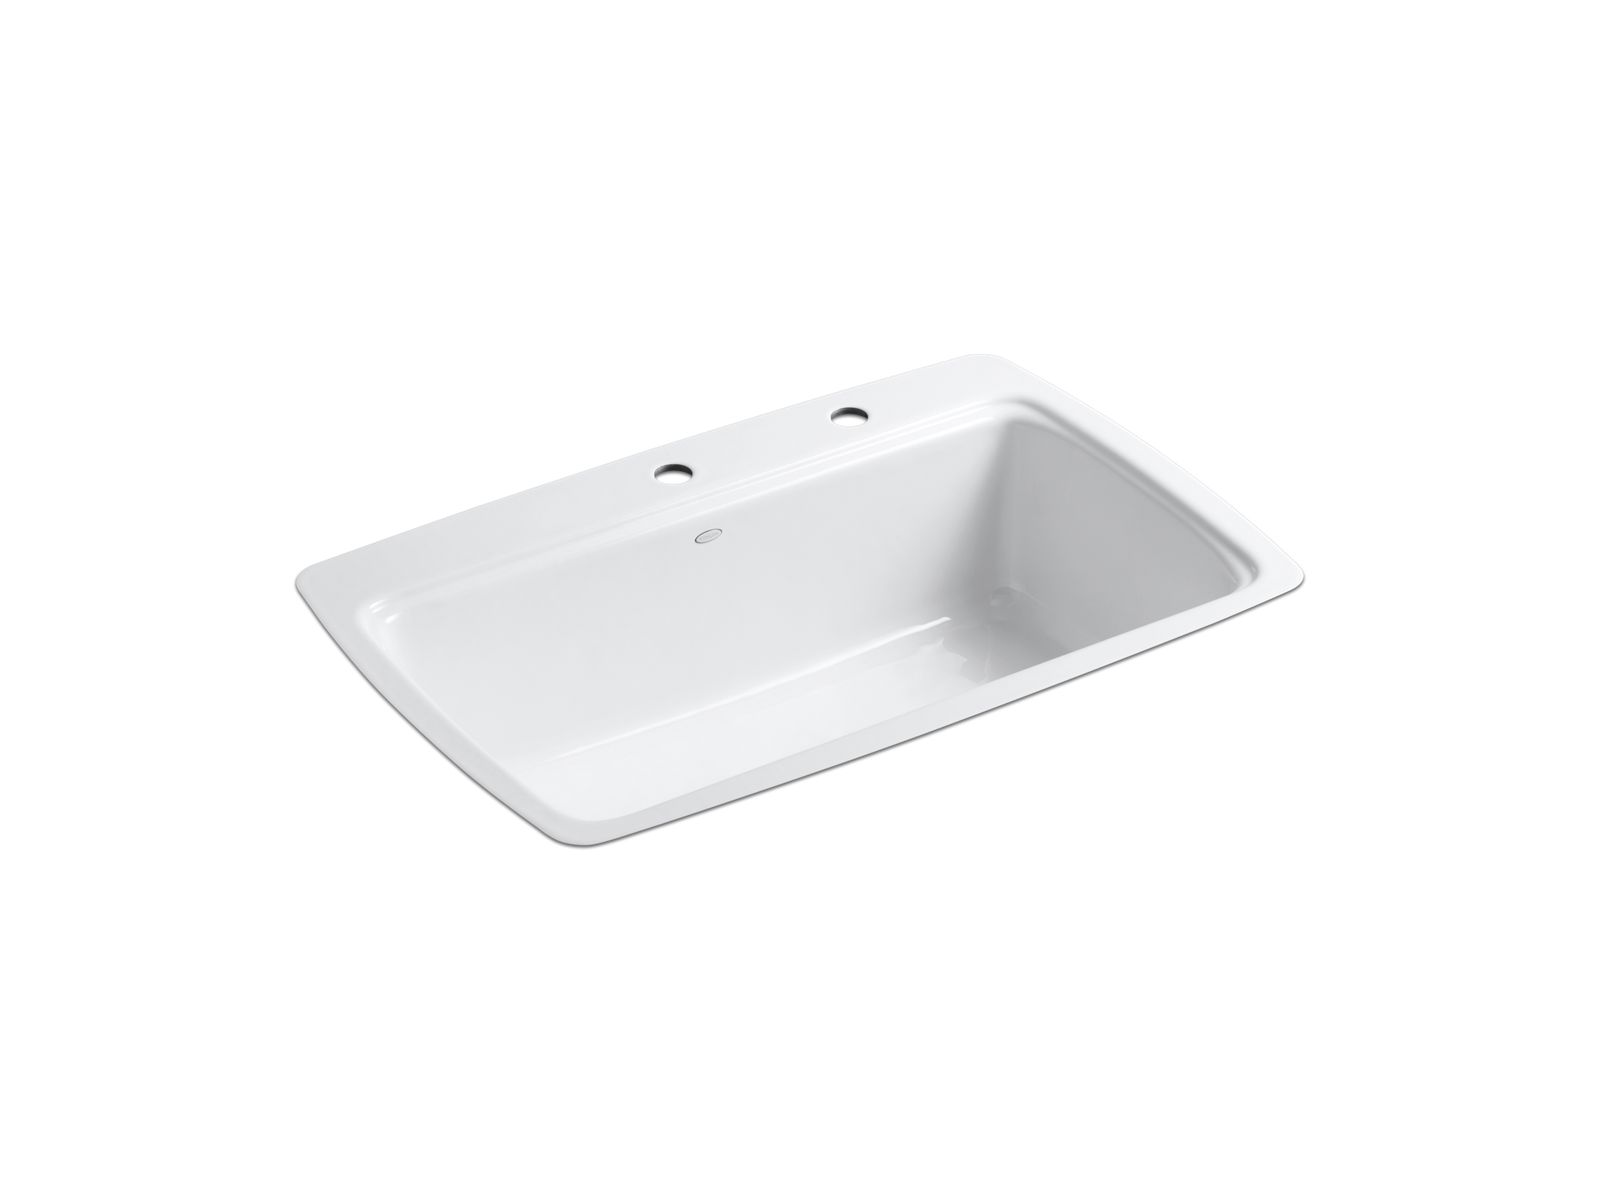 Merveilleux Cape Dory Tile In Kitchen Sink With Two Faucet Holes | K 5864 2 | KOHLER